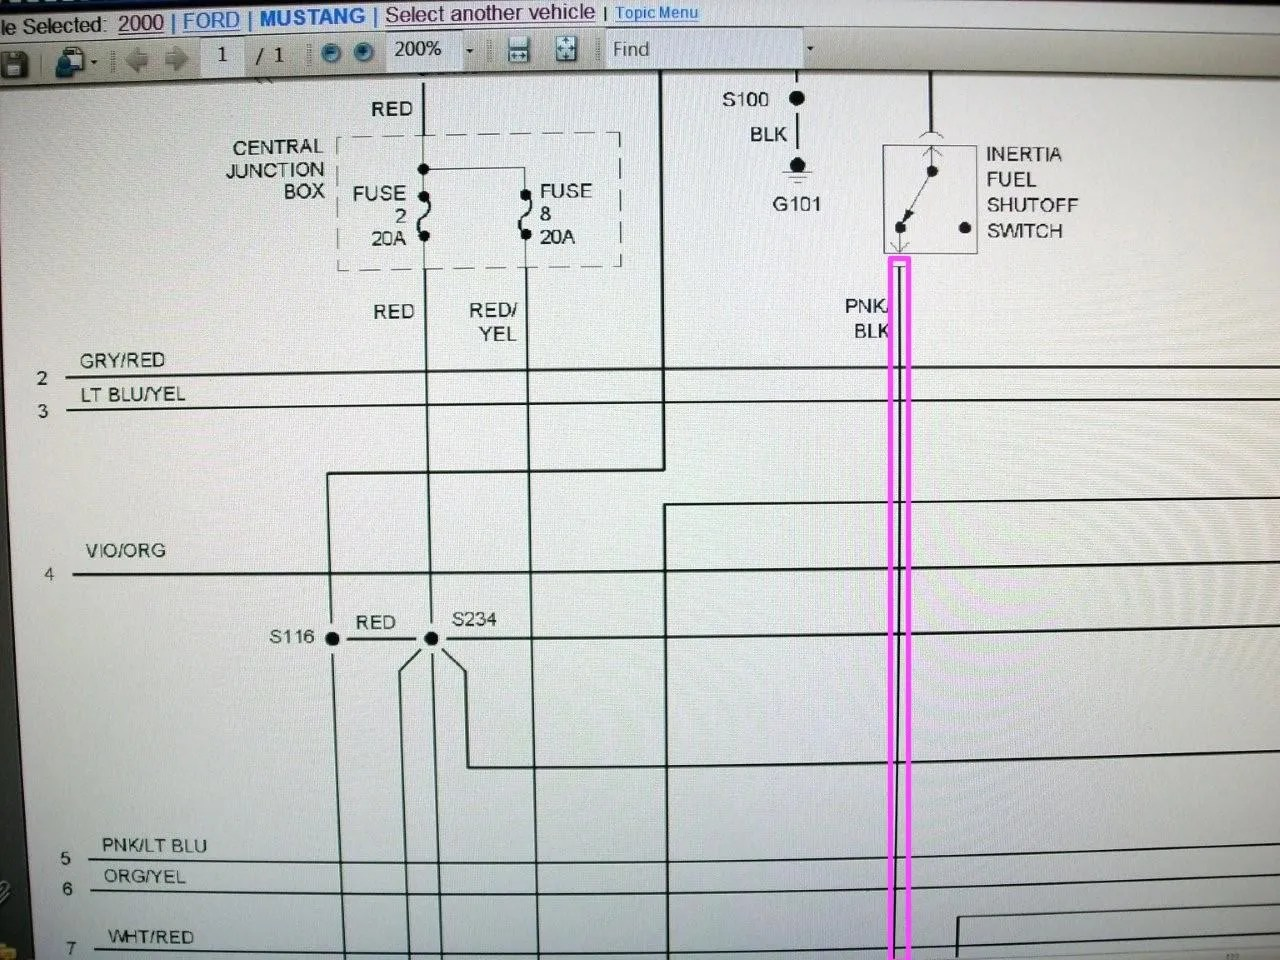 95 mustang gt fuel pump wiring diagram car tow hitch where is the relay mustangforums com these wires run directly to your from driver module good luck hope this helps tommy